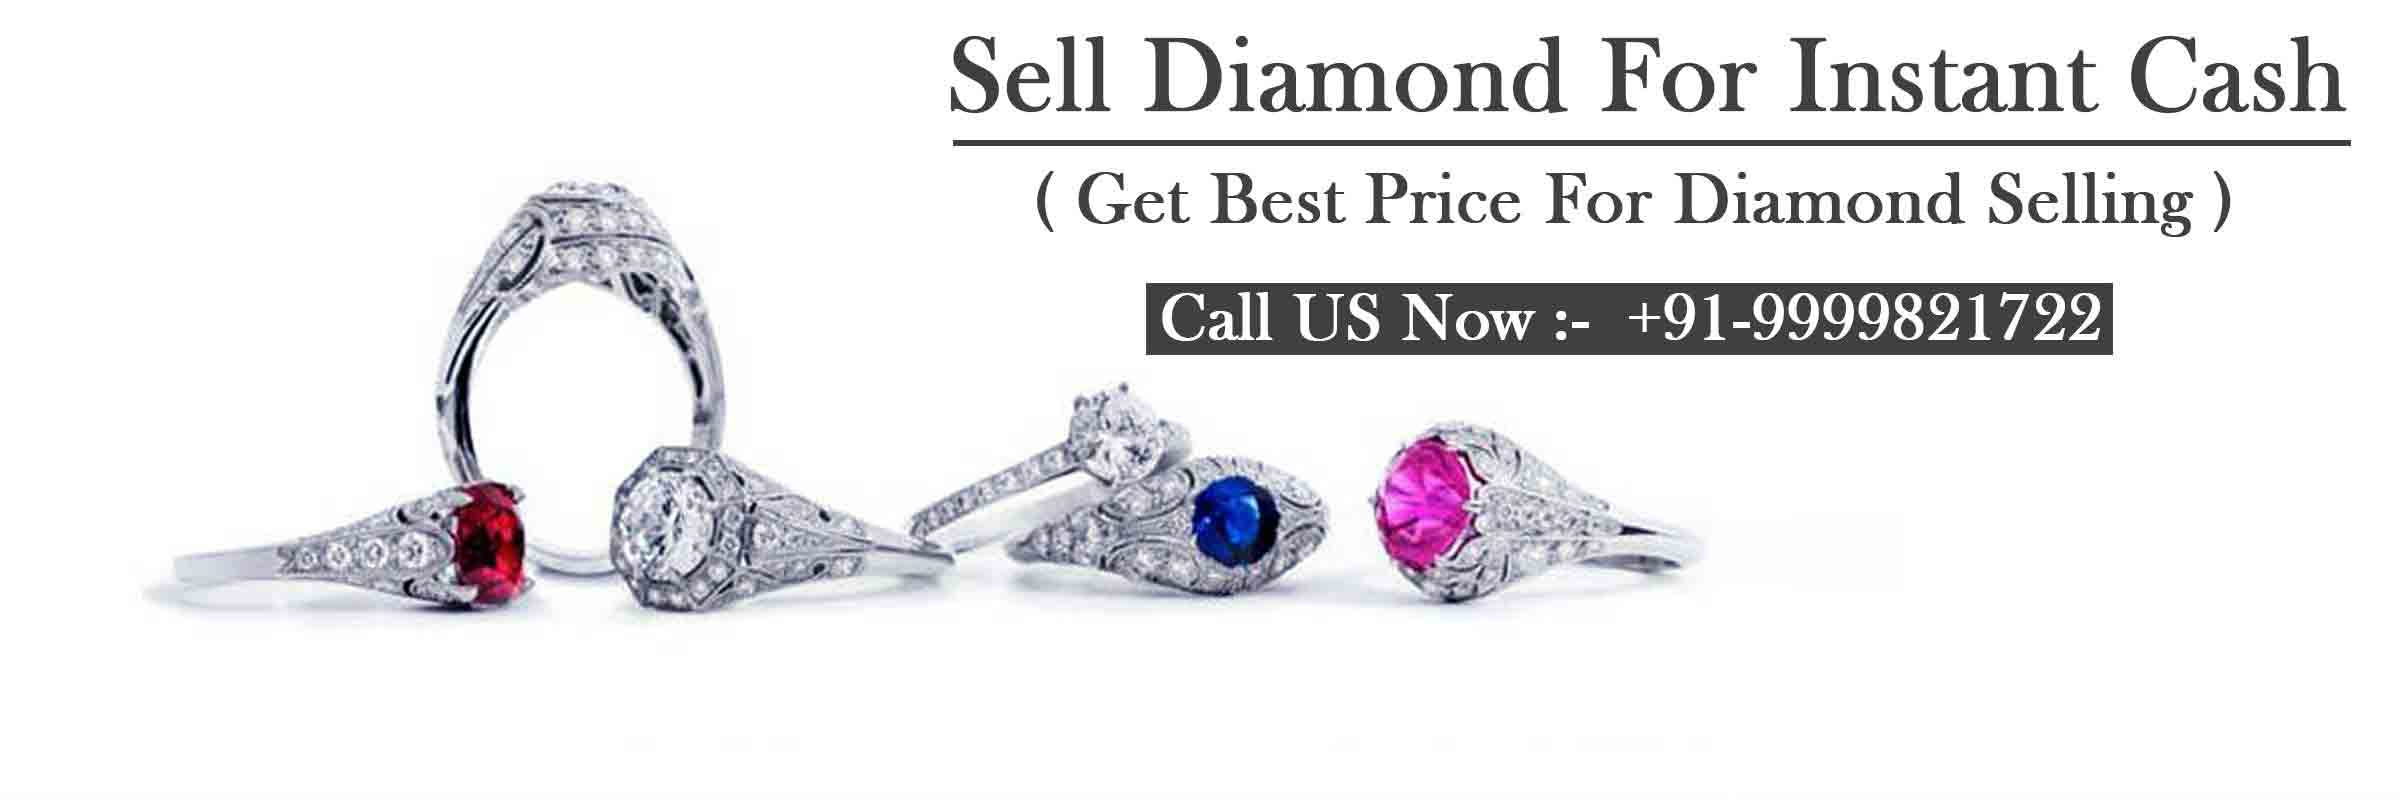 Sell Diamond for Instant Cash